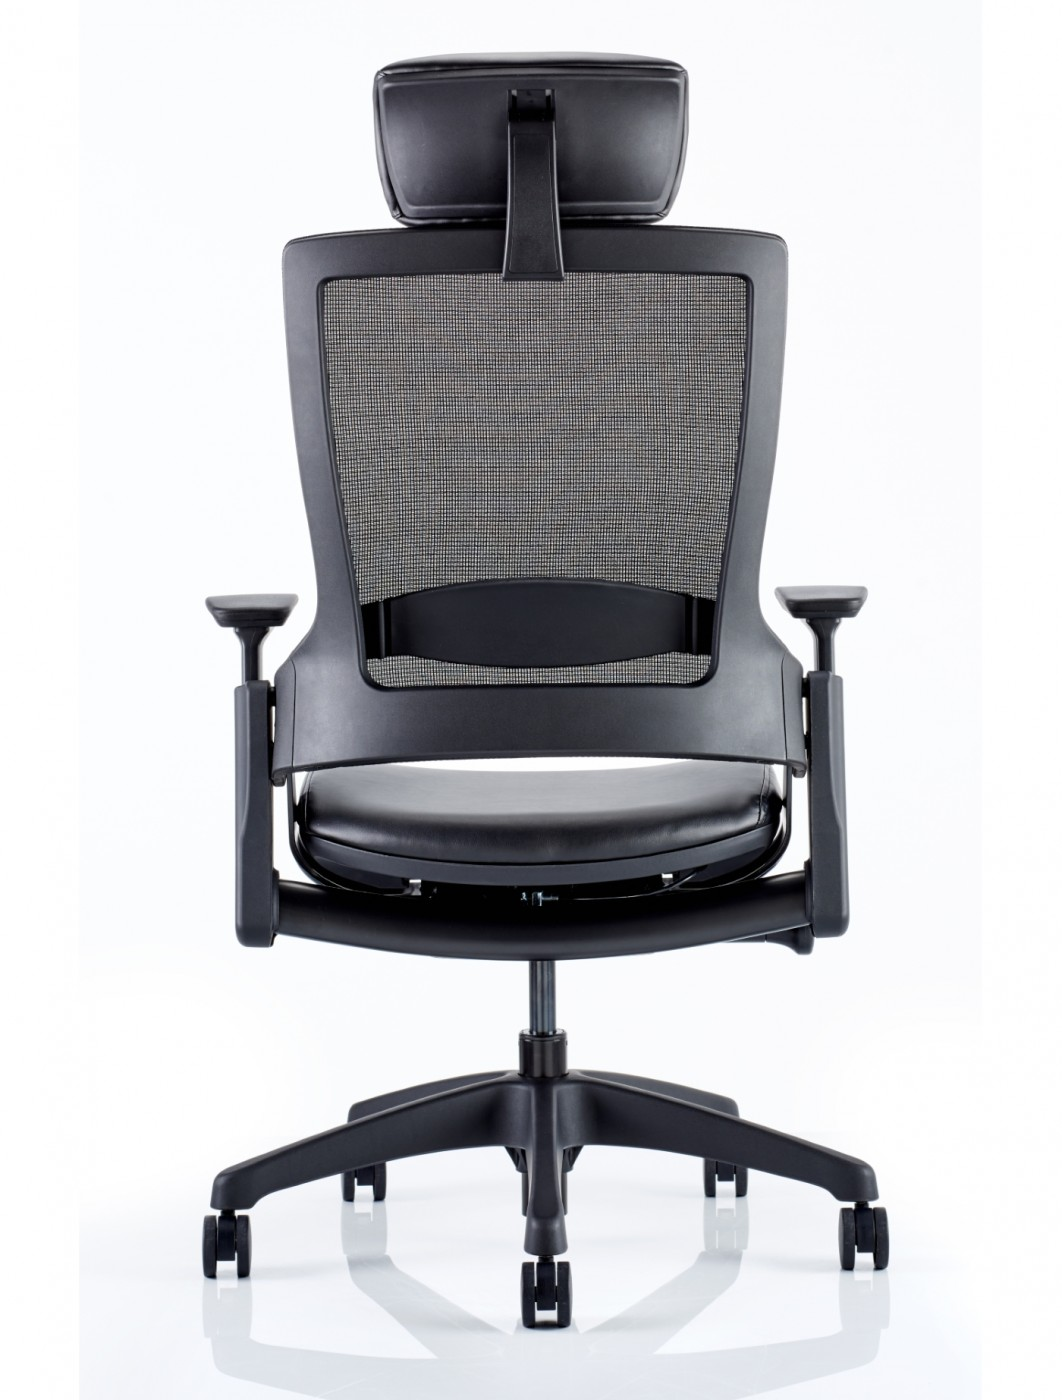 Office Chairs - Molet Task Exec Mesh Back Office Chair KC0277 with Headrest - enlarged view  sc 1 st  121 Office Furniture & Office Chairs - Molet Task Exec Mesh Office Chair KC0277 | 121 ...